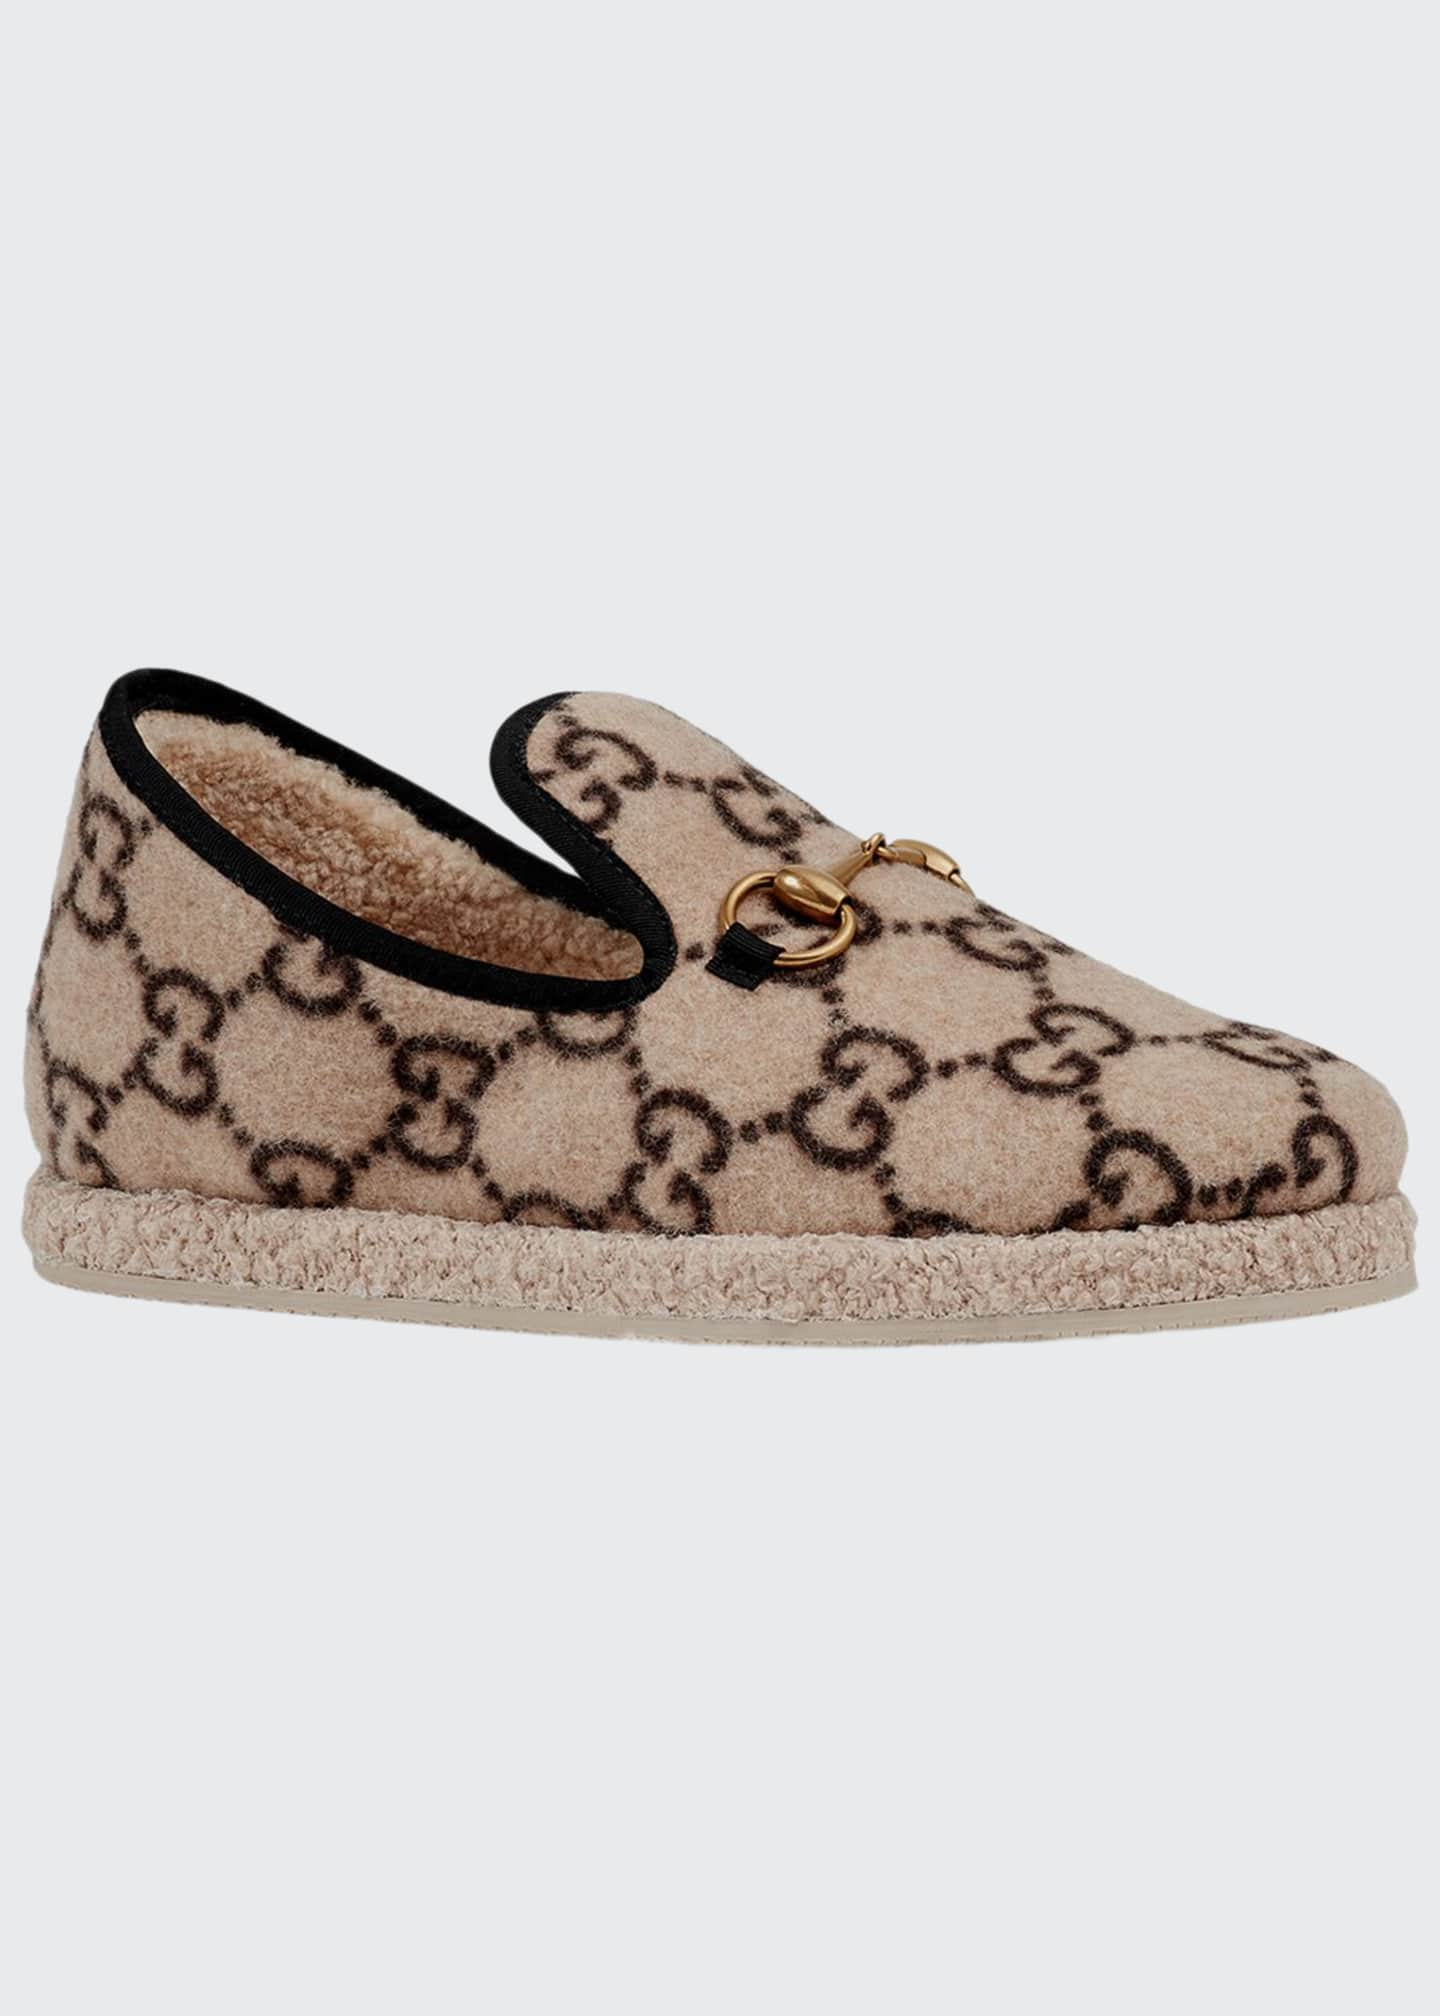 Gucci Fria GG Wool Slippers